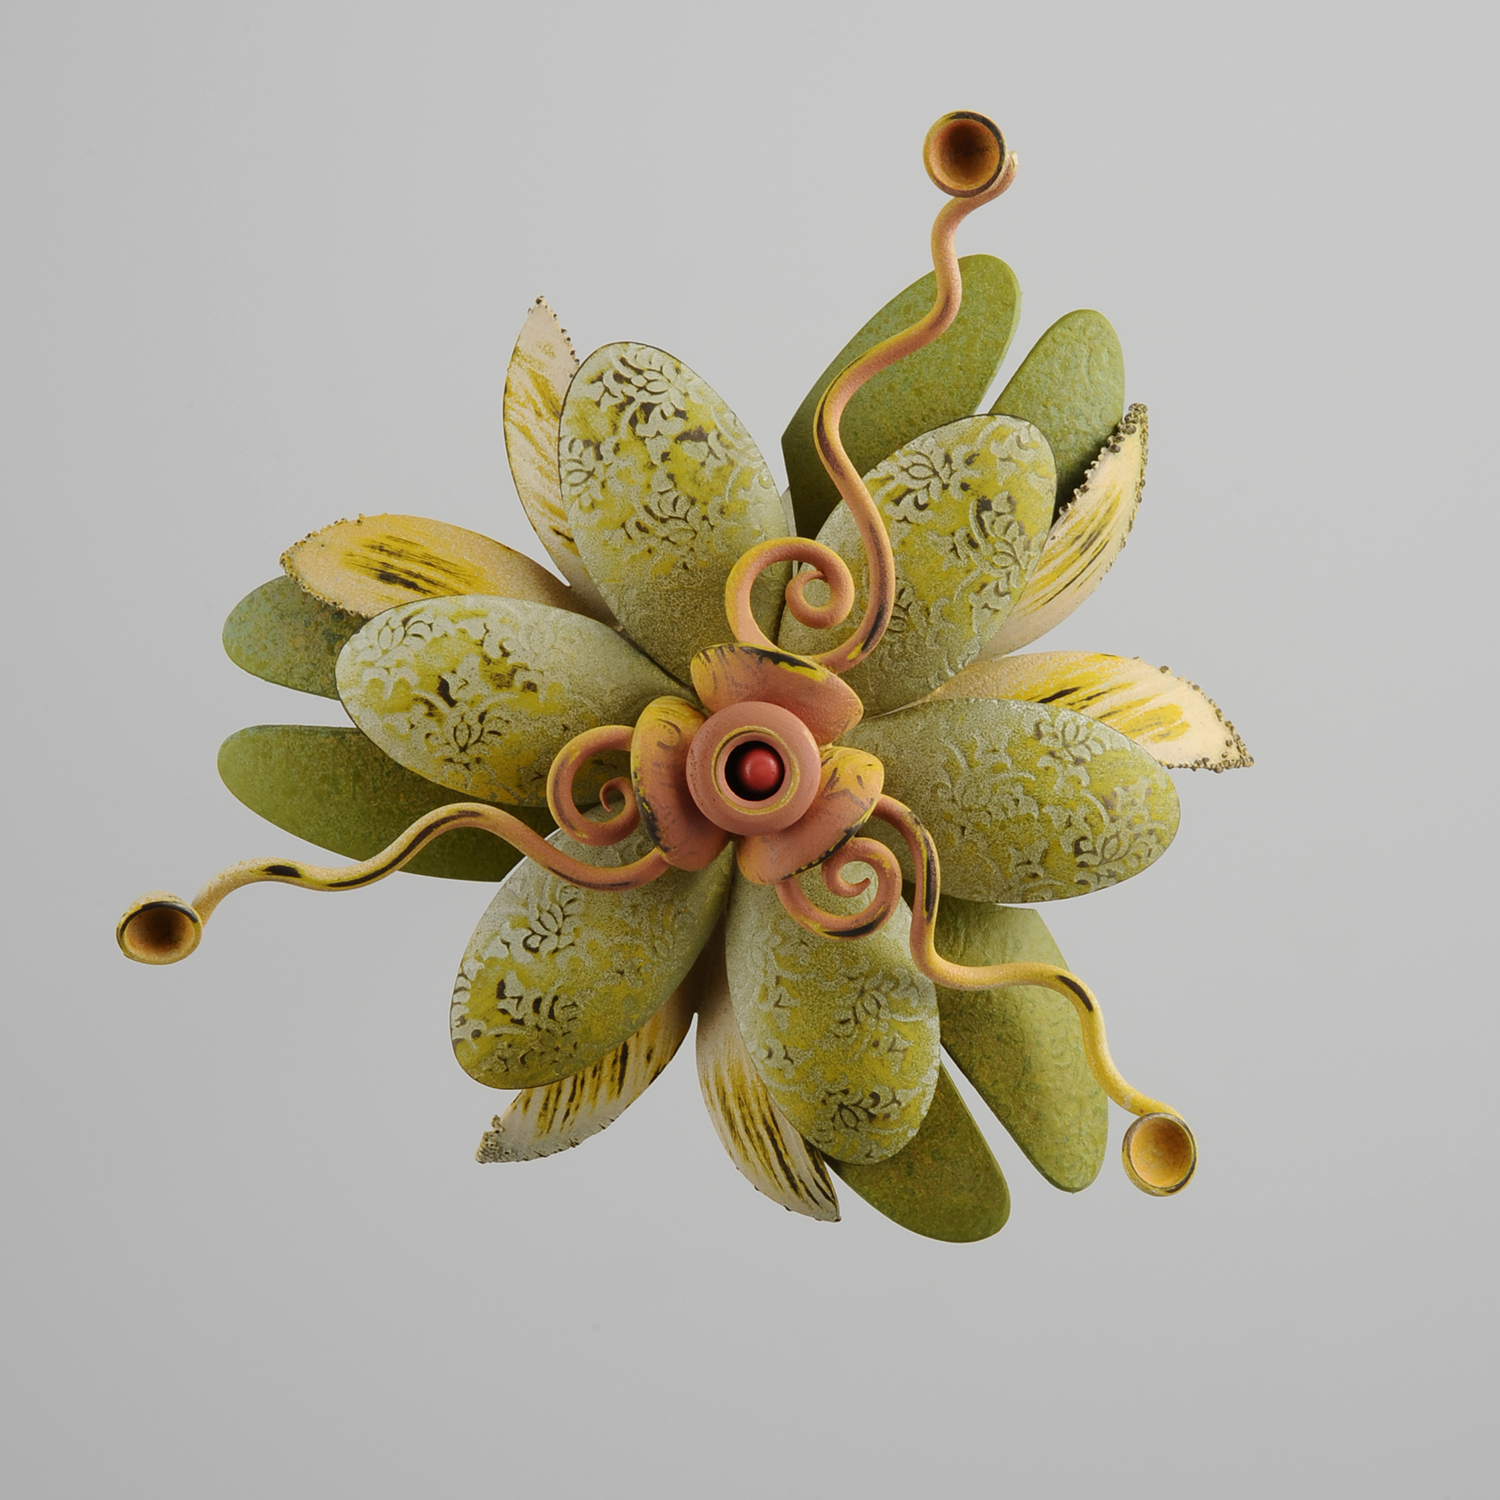 Rosette Brooch 24-16  |  2016  |  bronze, copper  |  4 x 4 x .75 inches